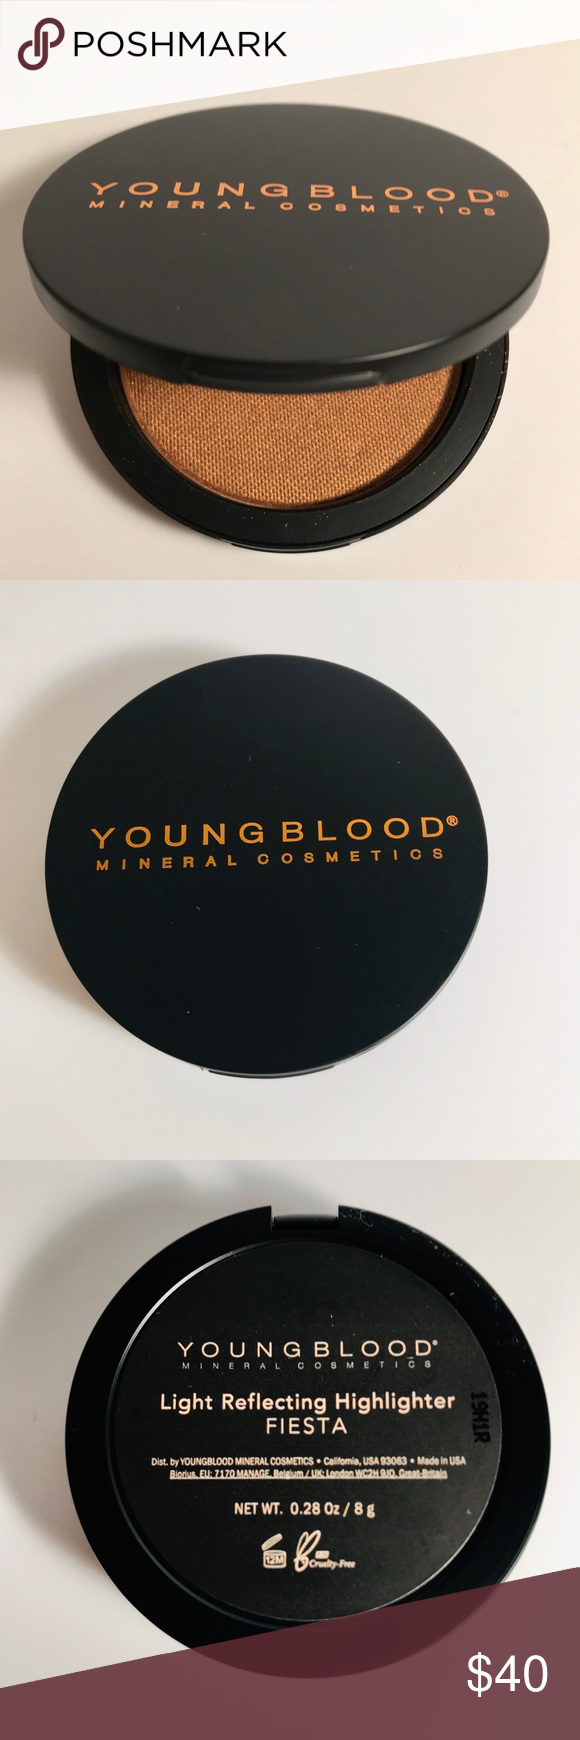 Youngblood Lights Right Reflecting Highlighter #mineralcosmetics